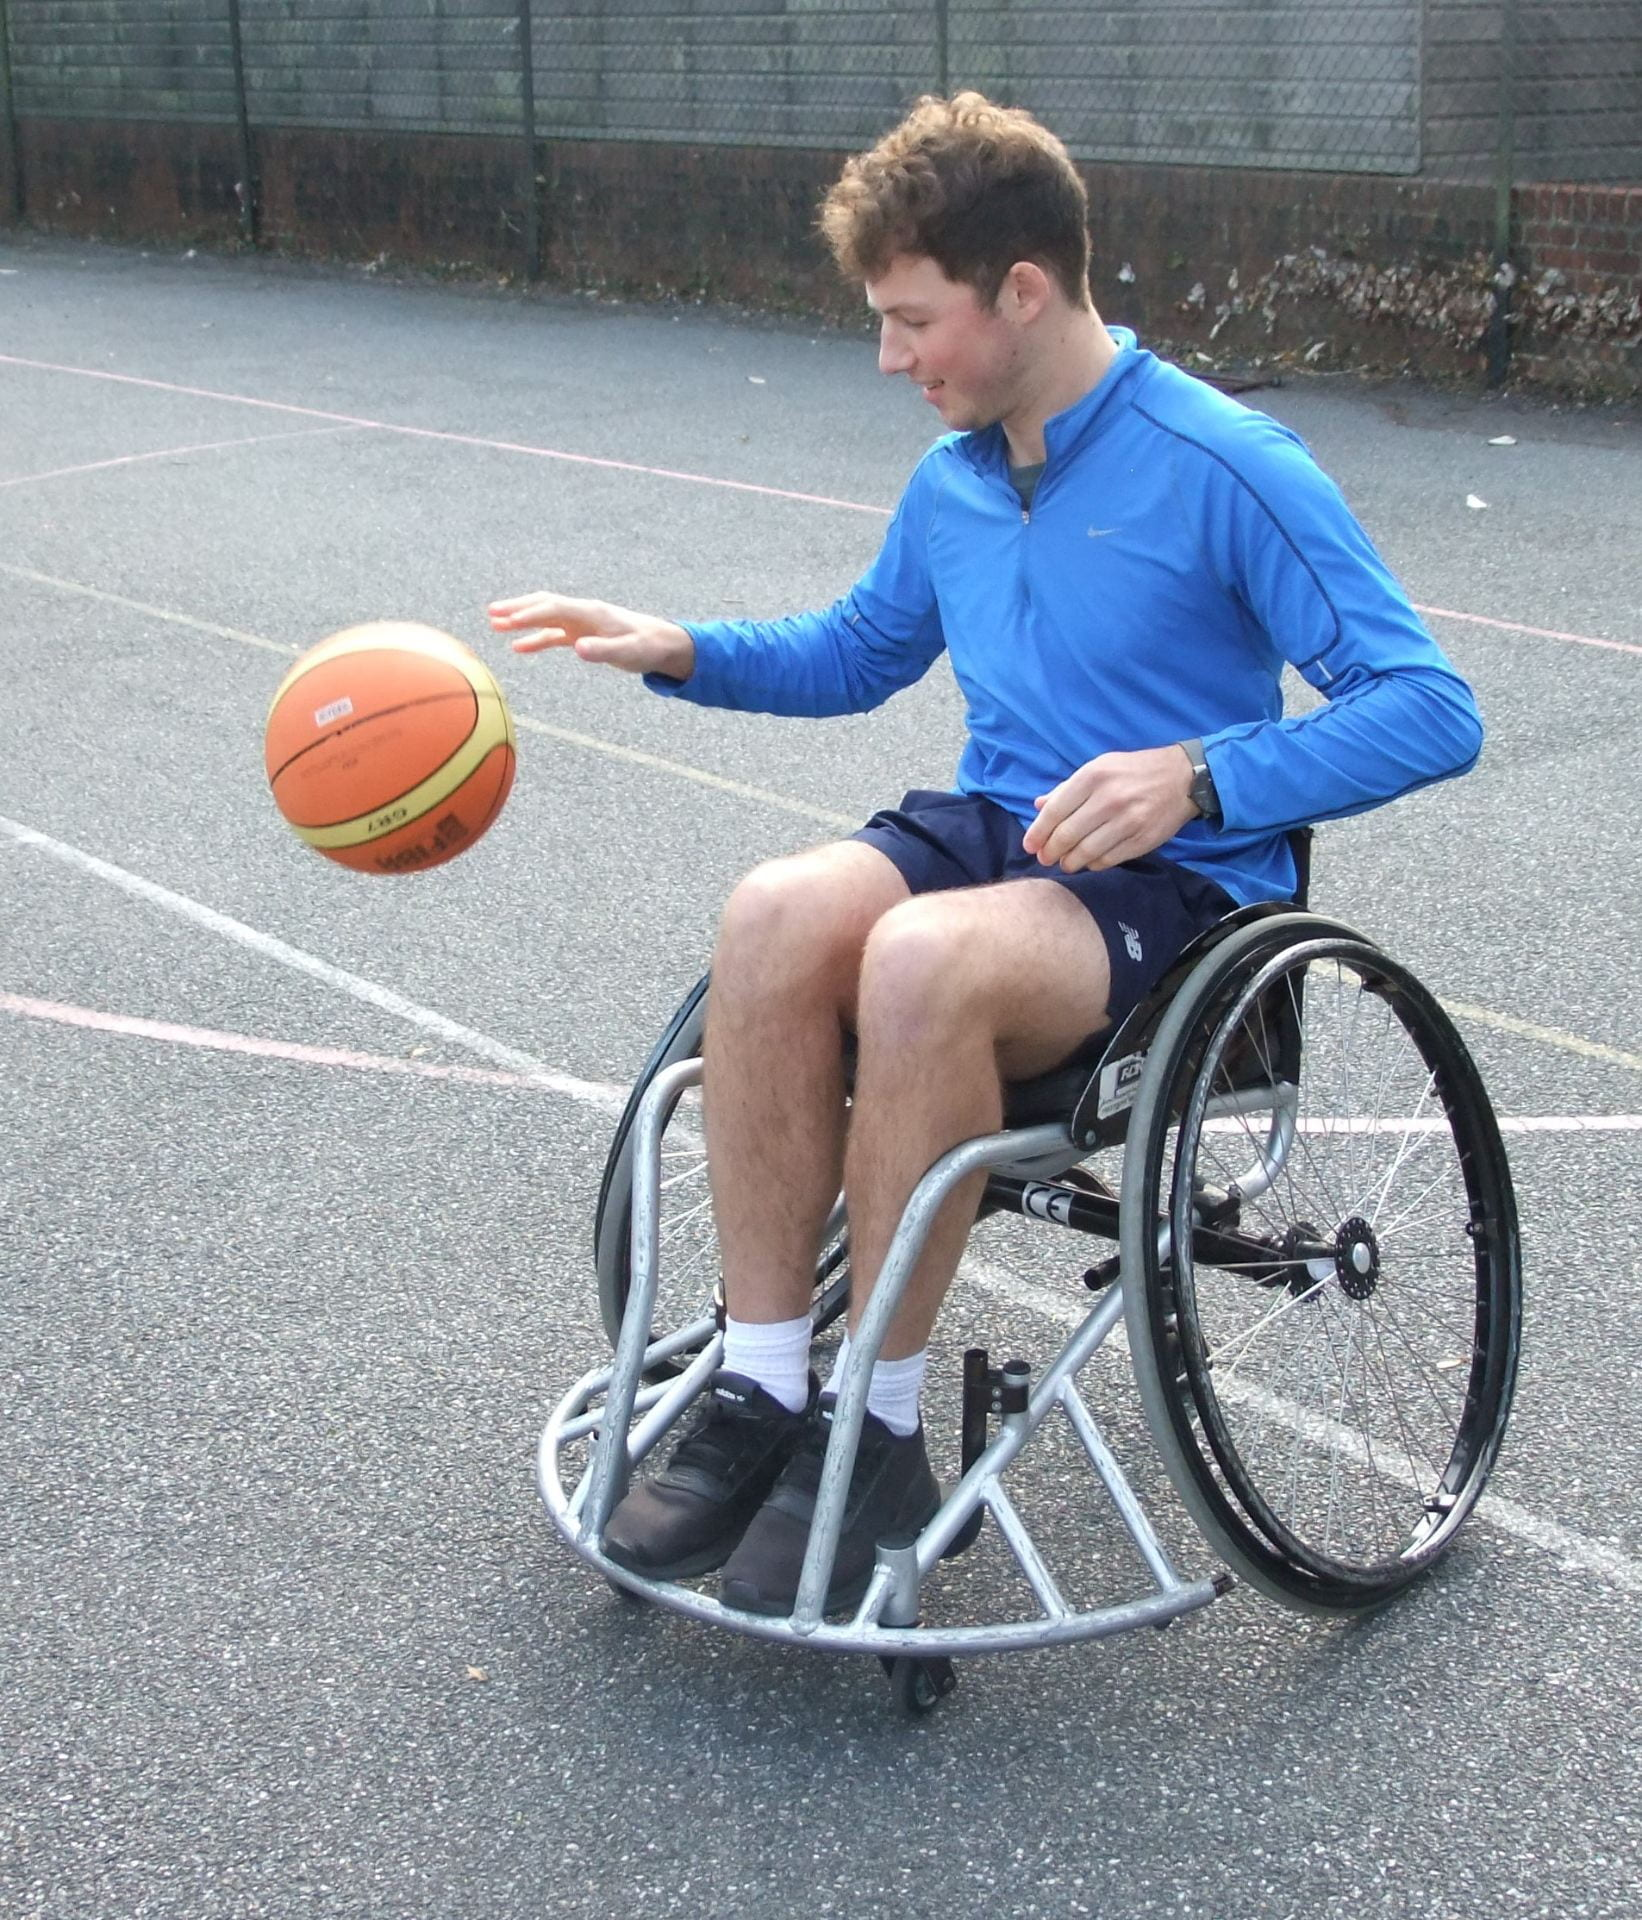 one of the students in a wheelcharir bouncing a ball